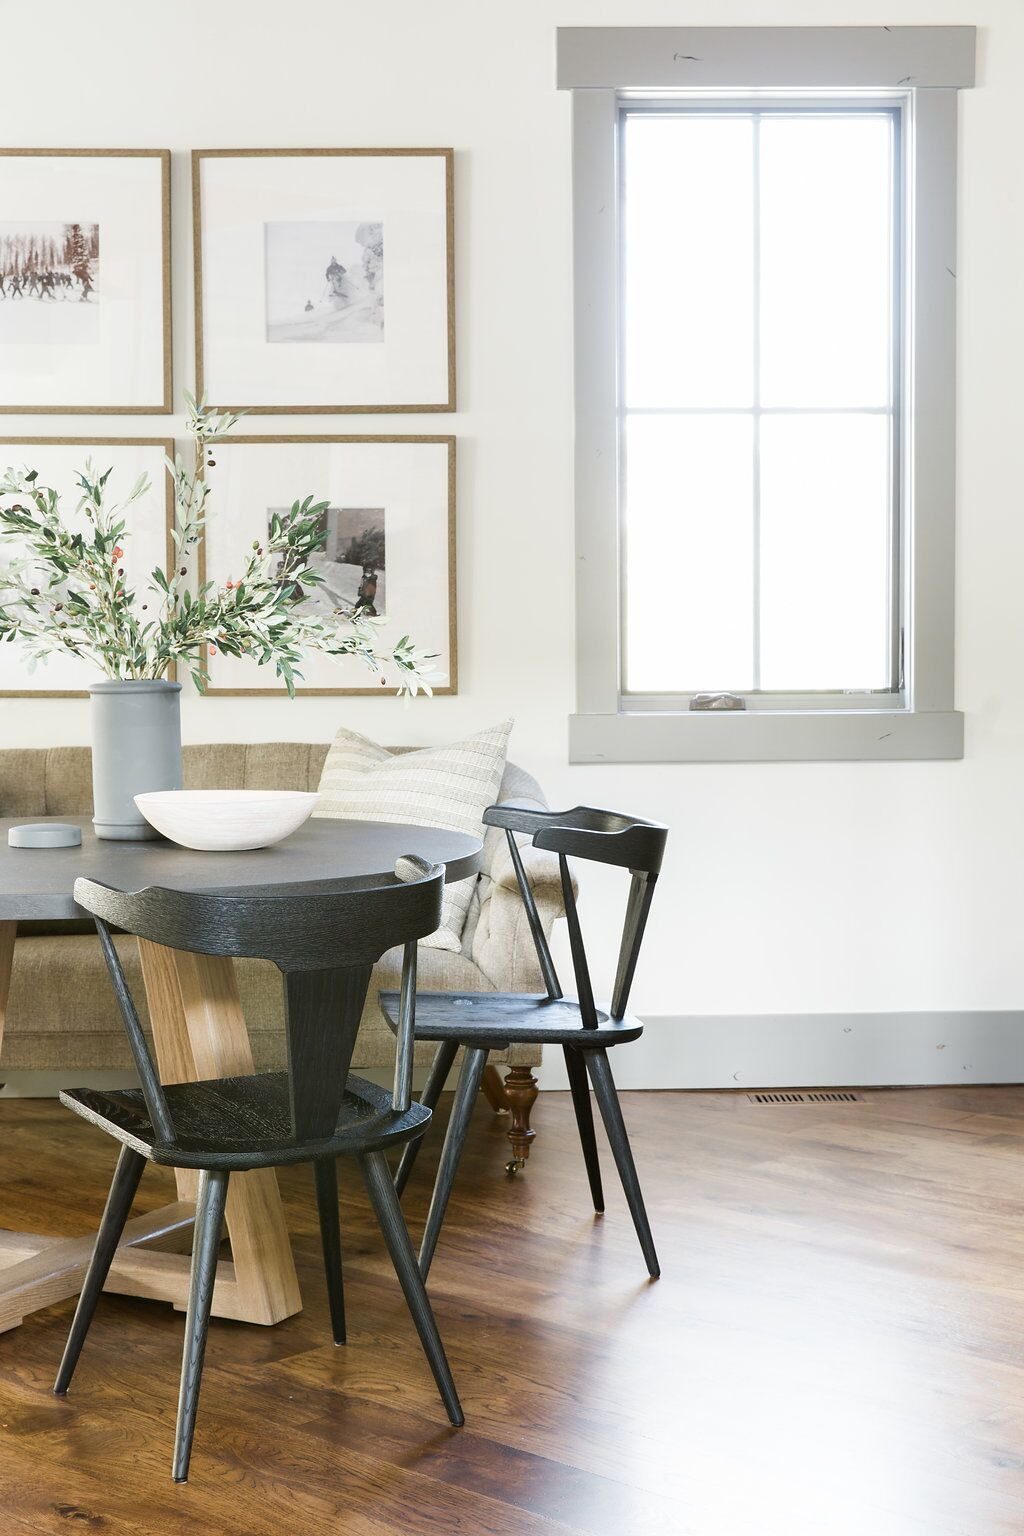 A modern minimalist dining room with European styling. I love the way the neutrals flow together!